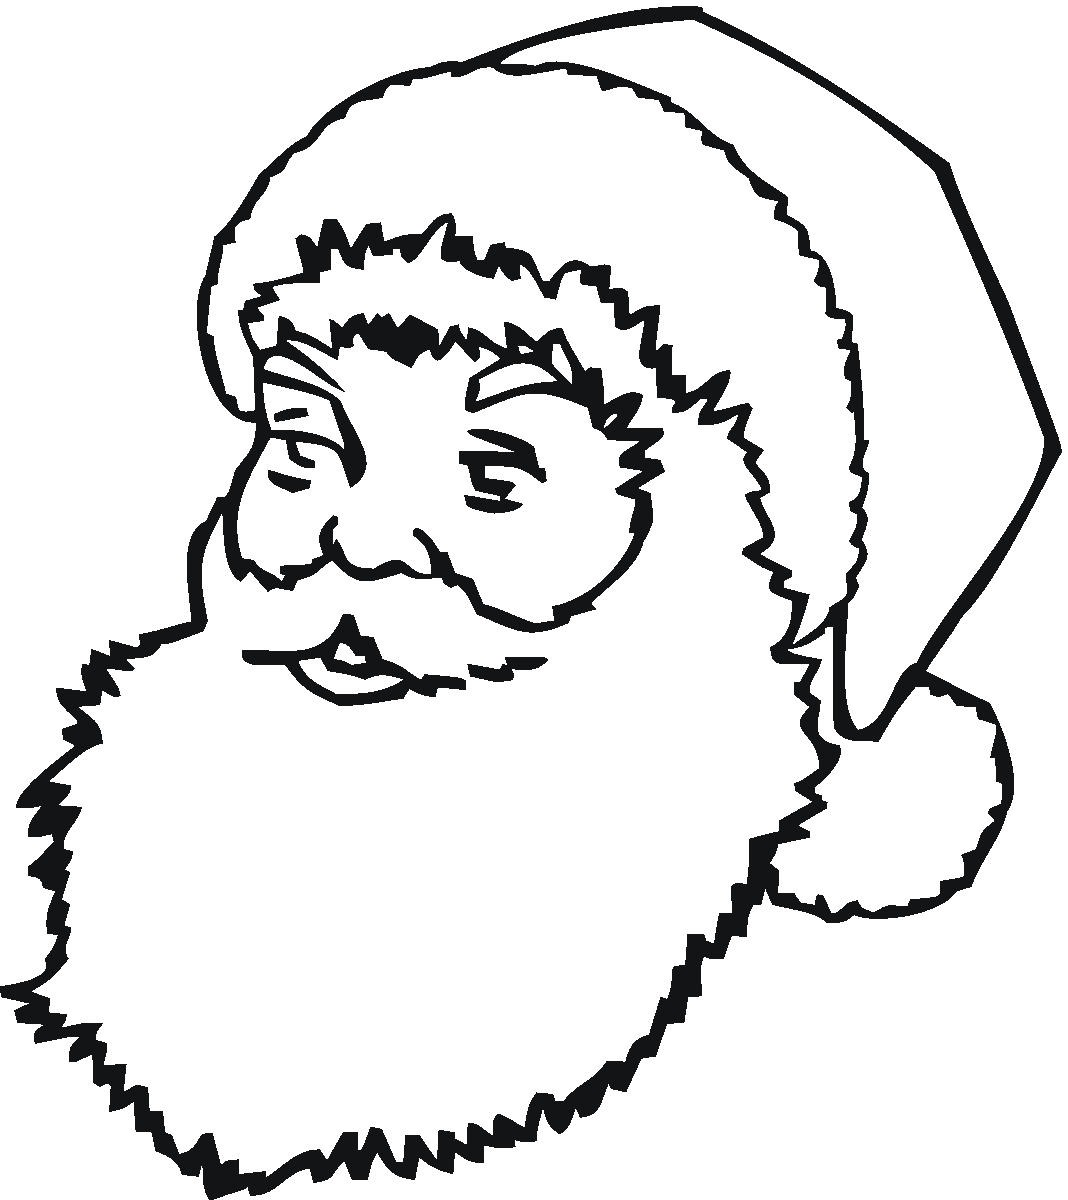 coloring pages with santa - photo#32